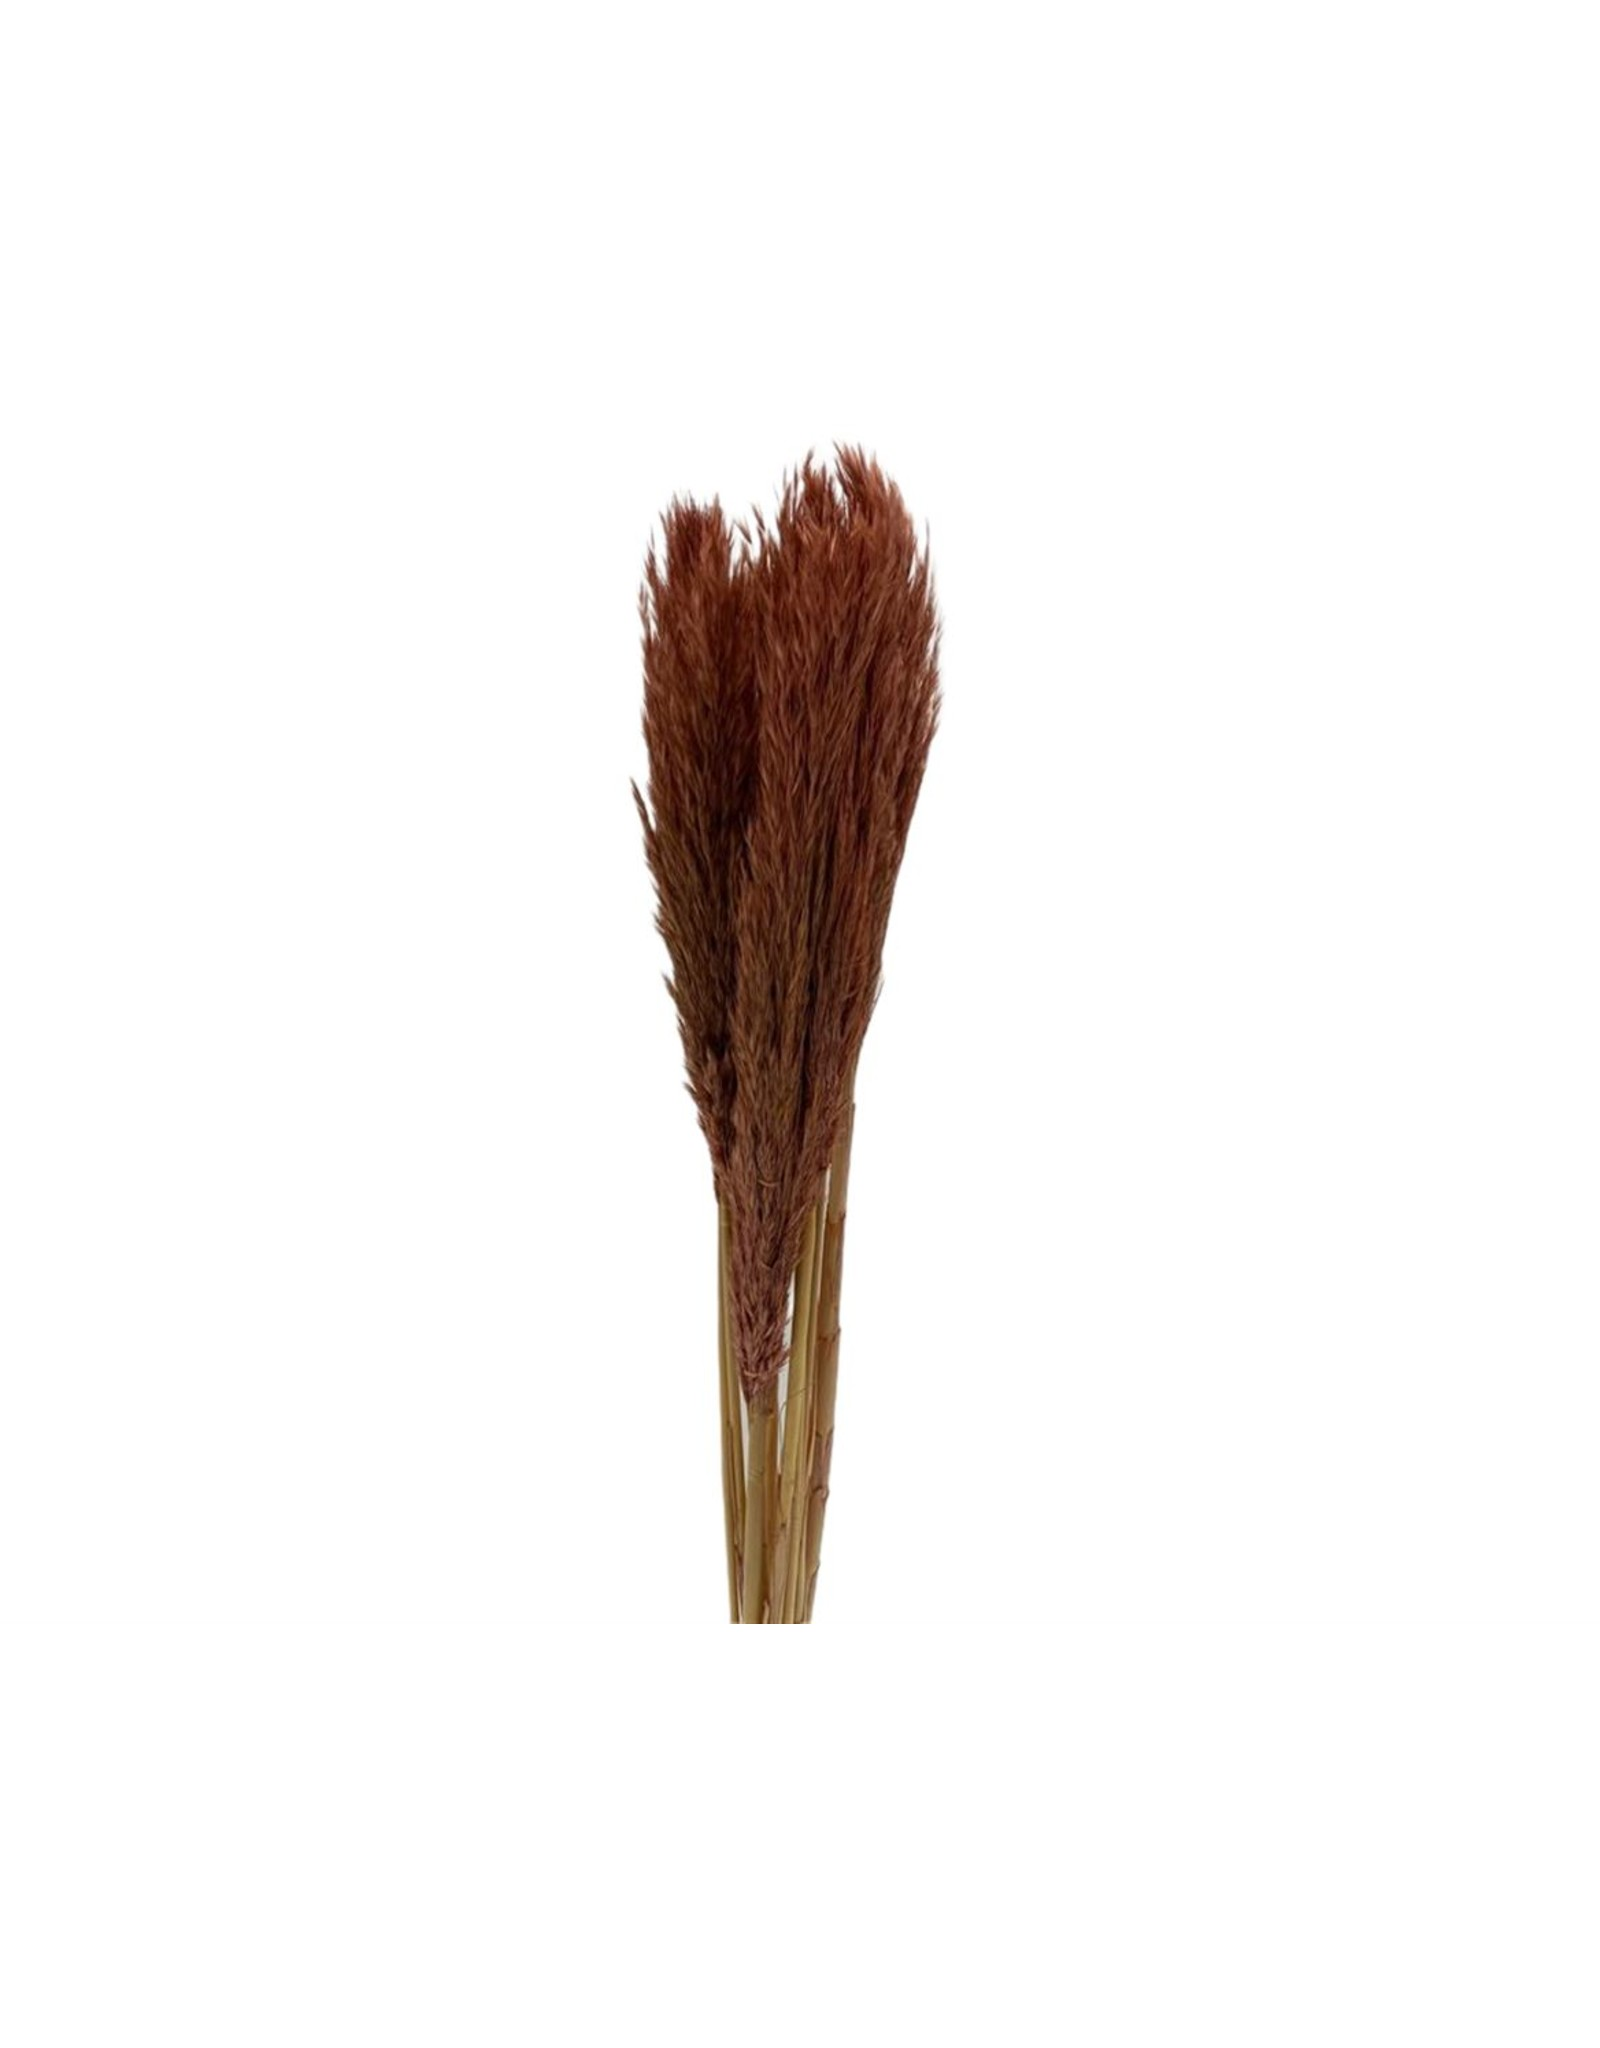 HD bos Nanal Grass 10pc in hoes  ↑75.0 (x 24)